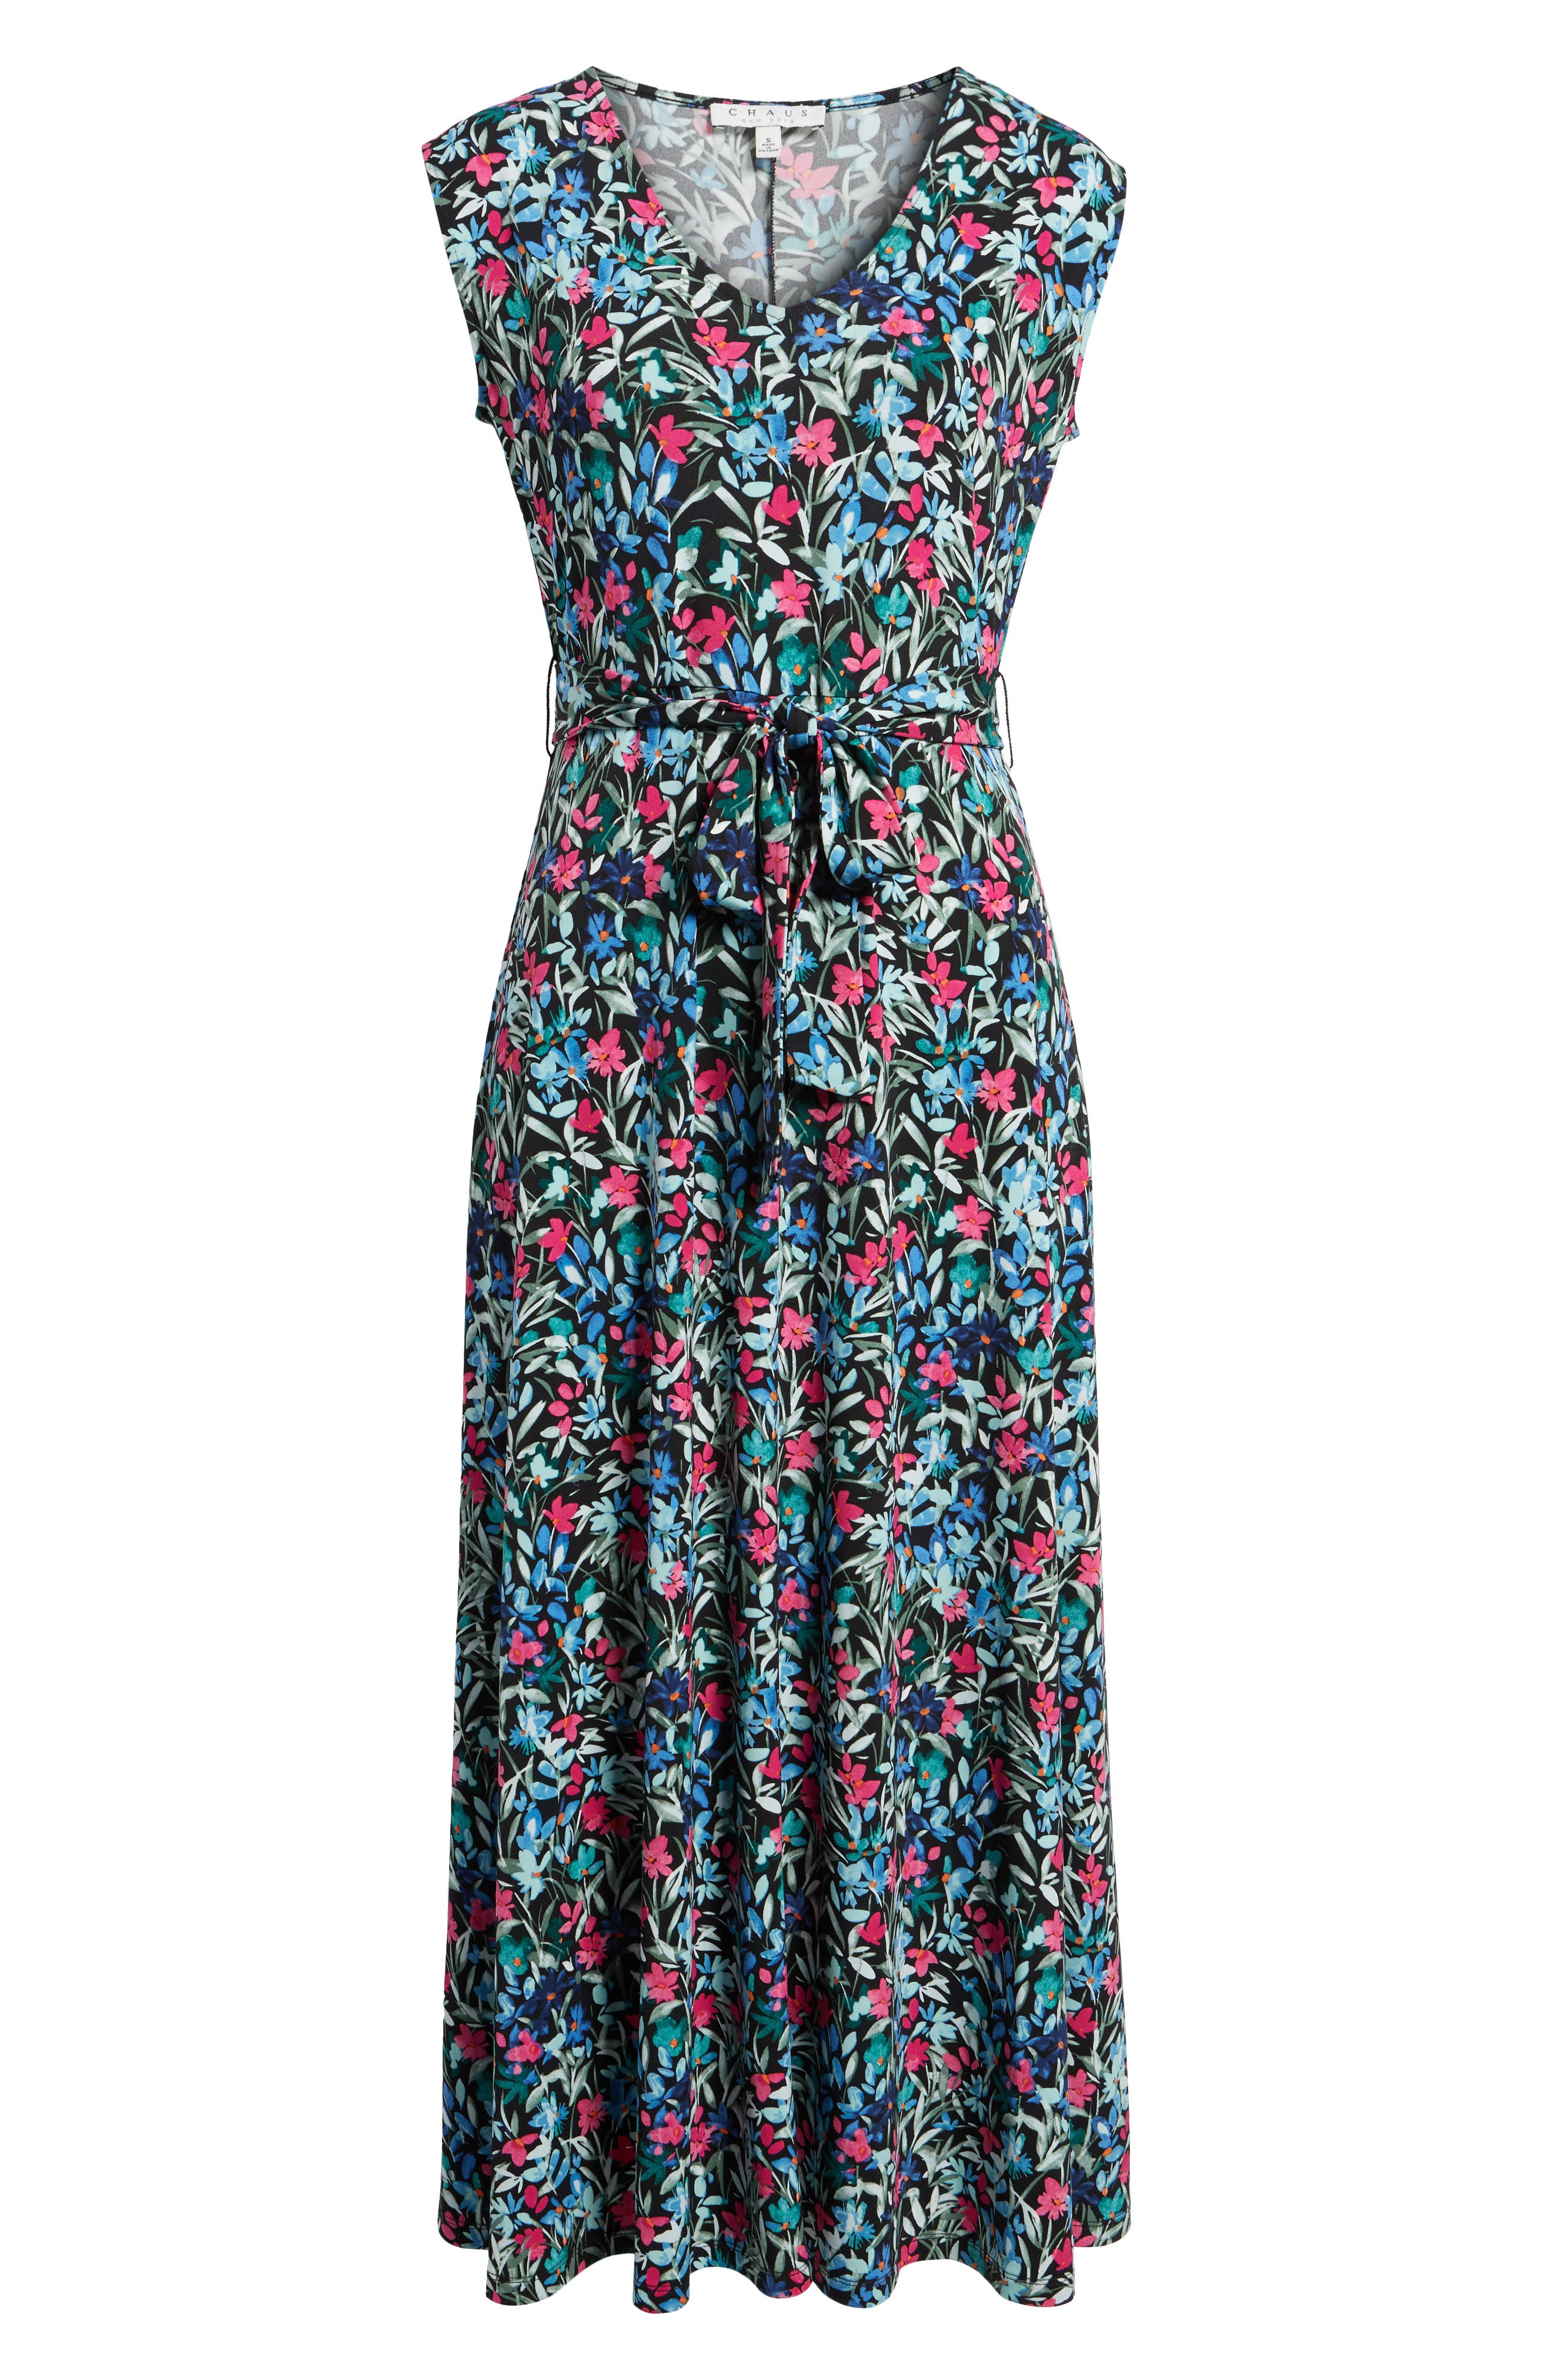 Radiant Flowers Sleeveless Tie Waist Dress,                             Alternate thumbnail 6, color,                             060-Rich Black